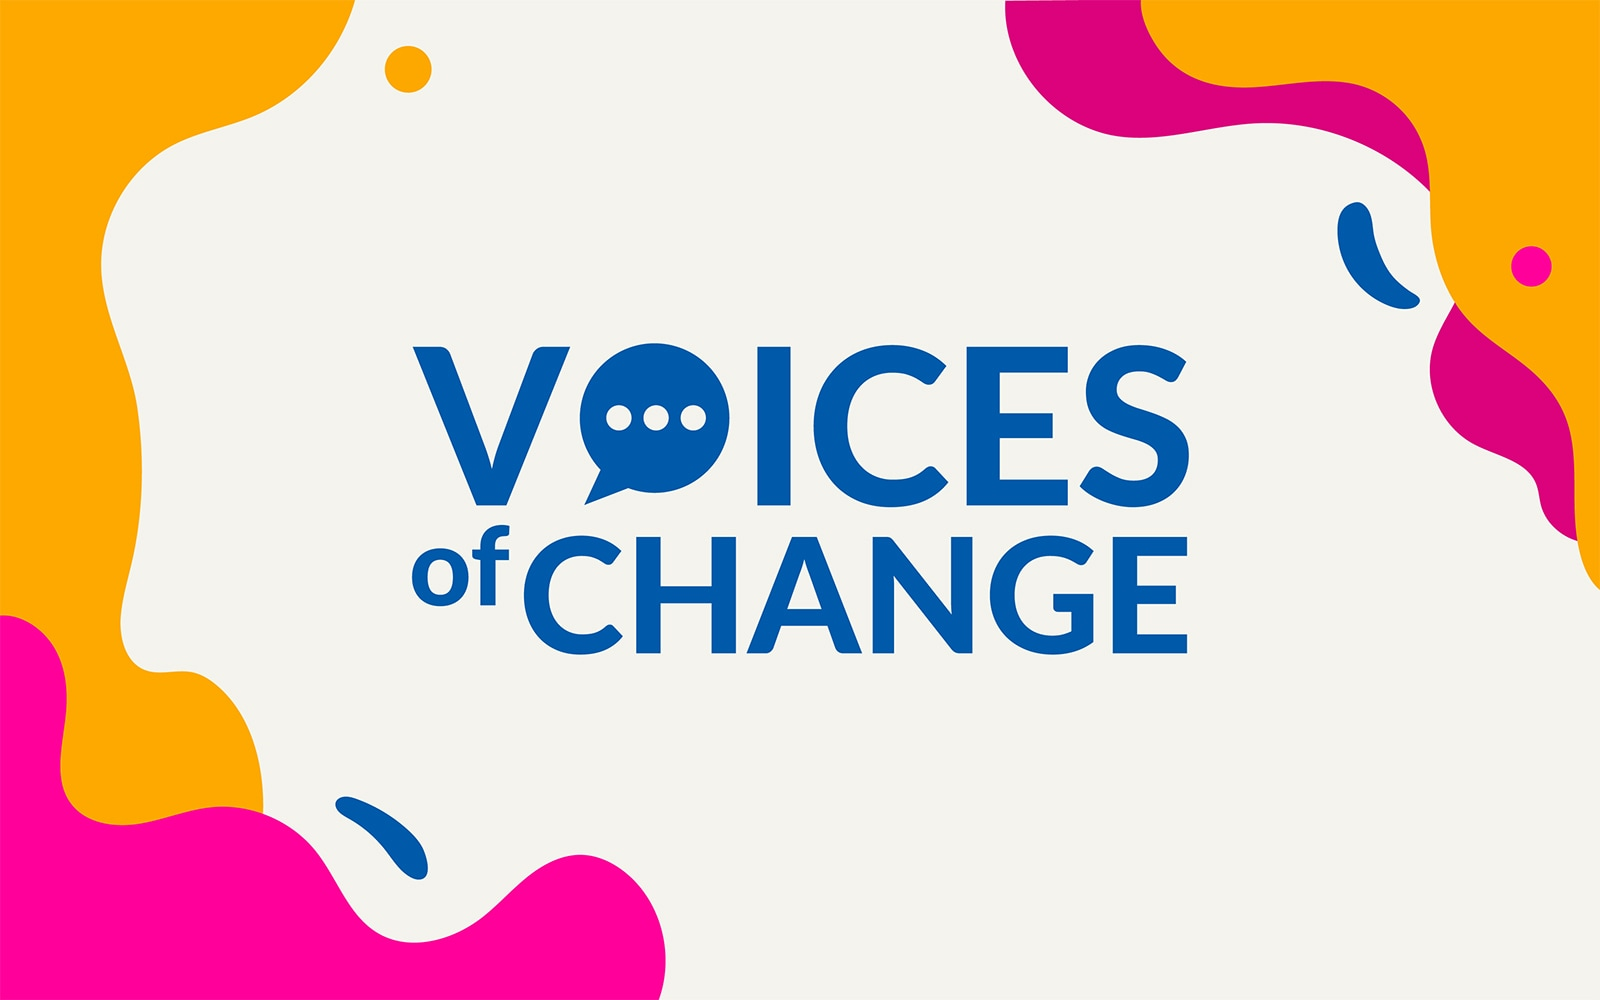 Voices of Change business advice by Philip Morris International employees